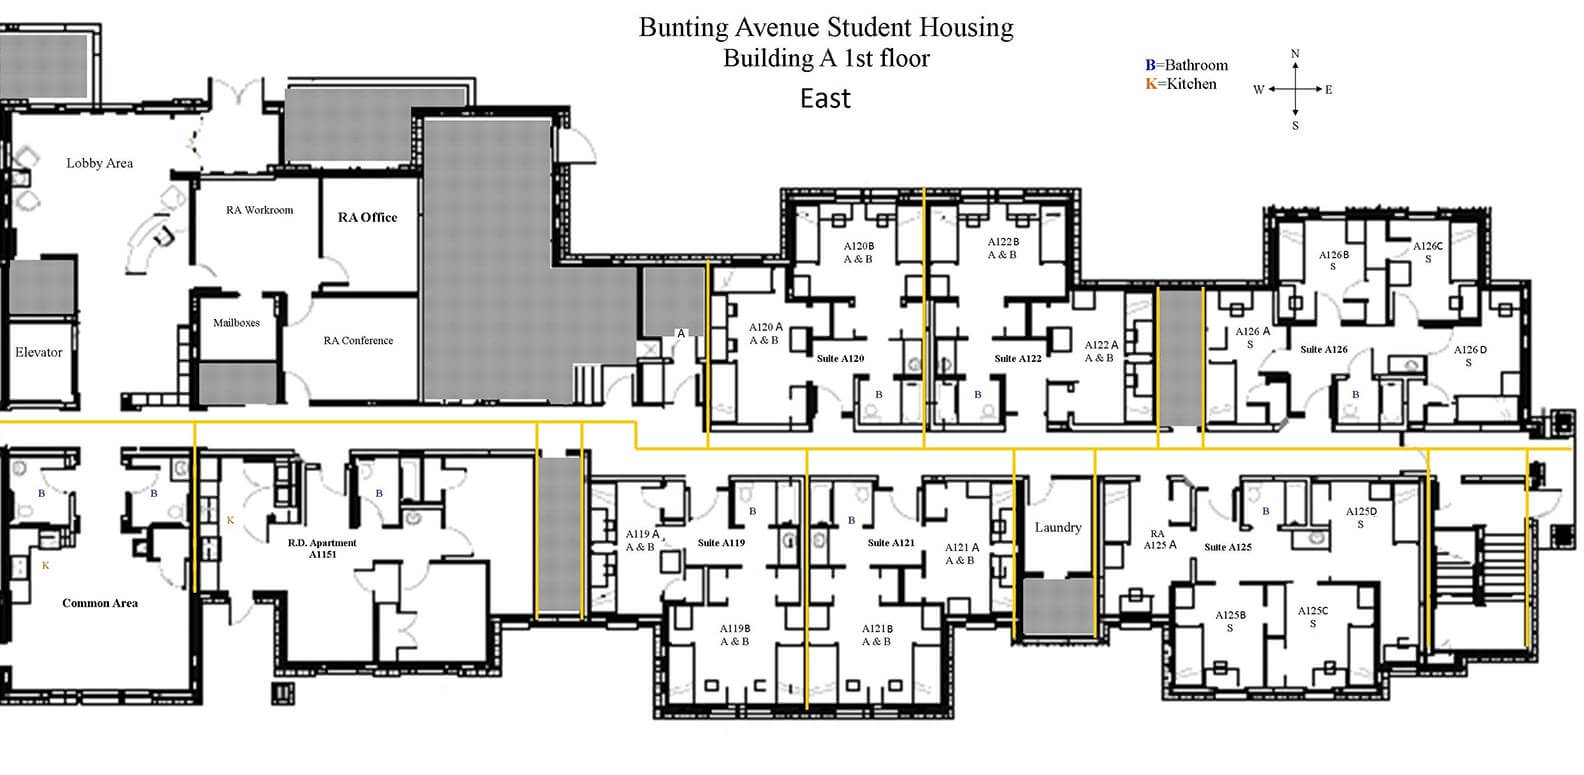 Dorm Room Layout At St John S University